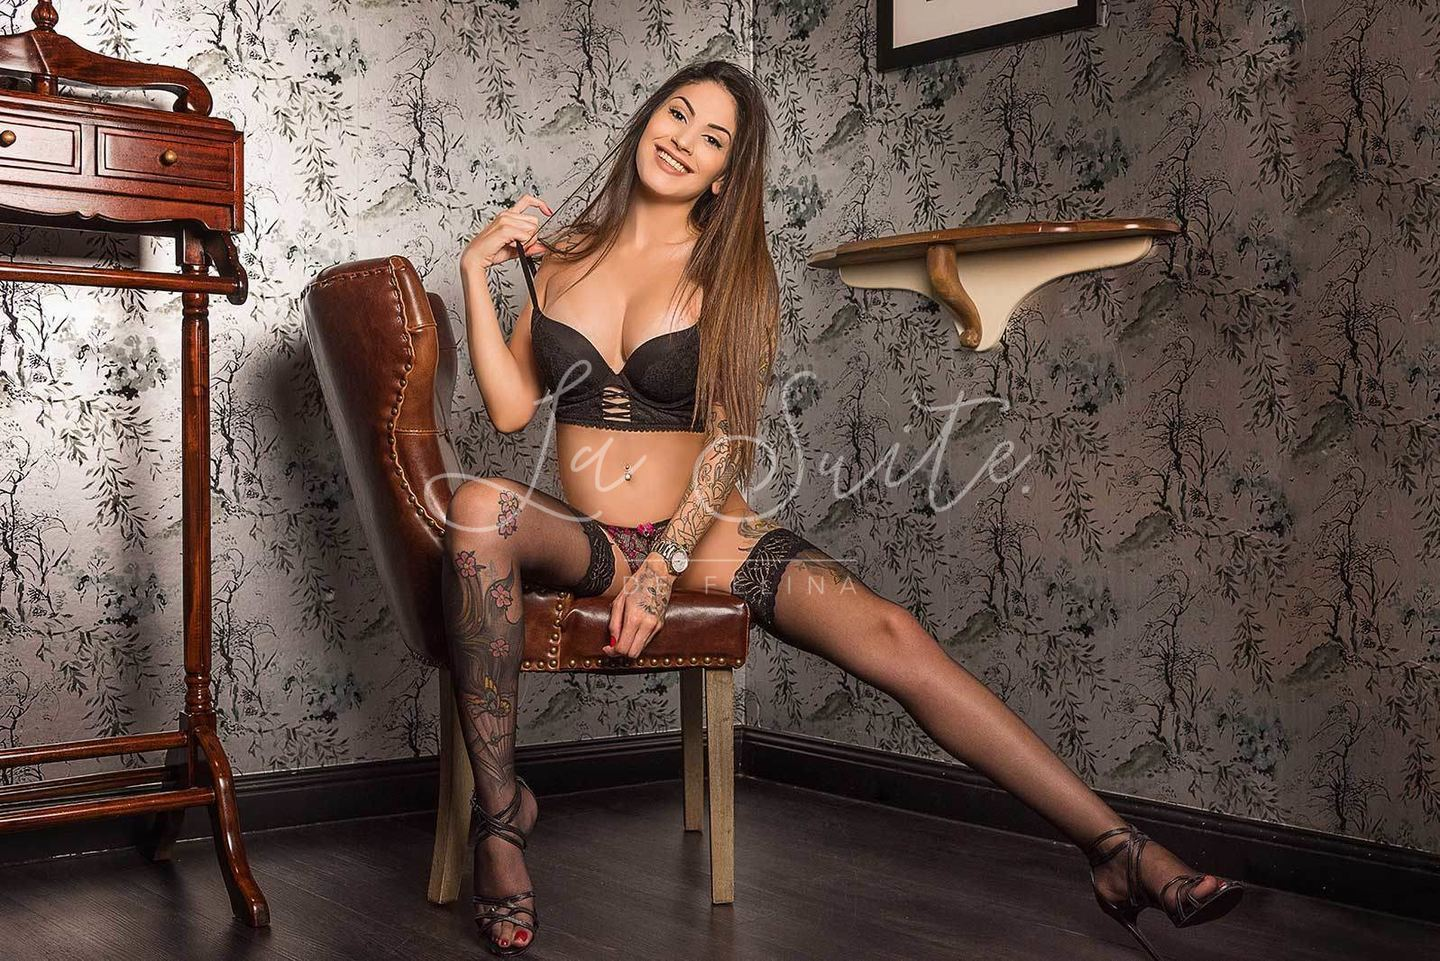 Lara: Sexy Brazilian escort for  girlfriend experience in Barcelona, wearing black lingerie